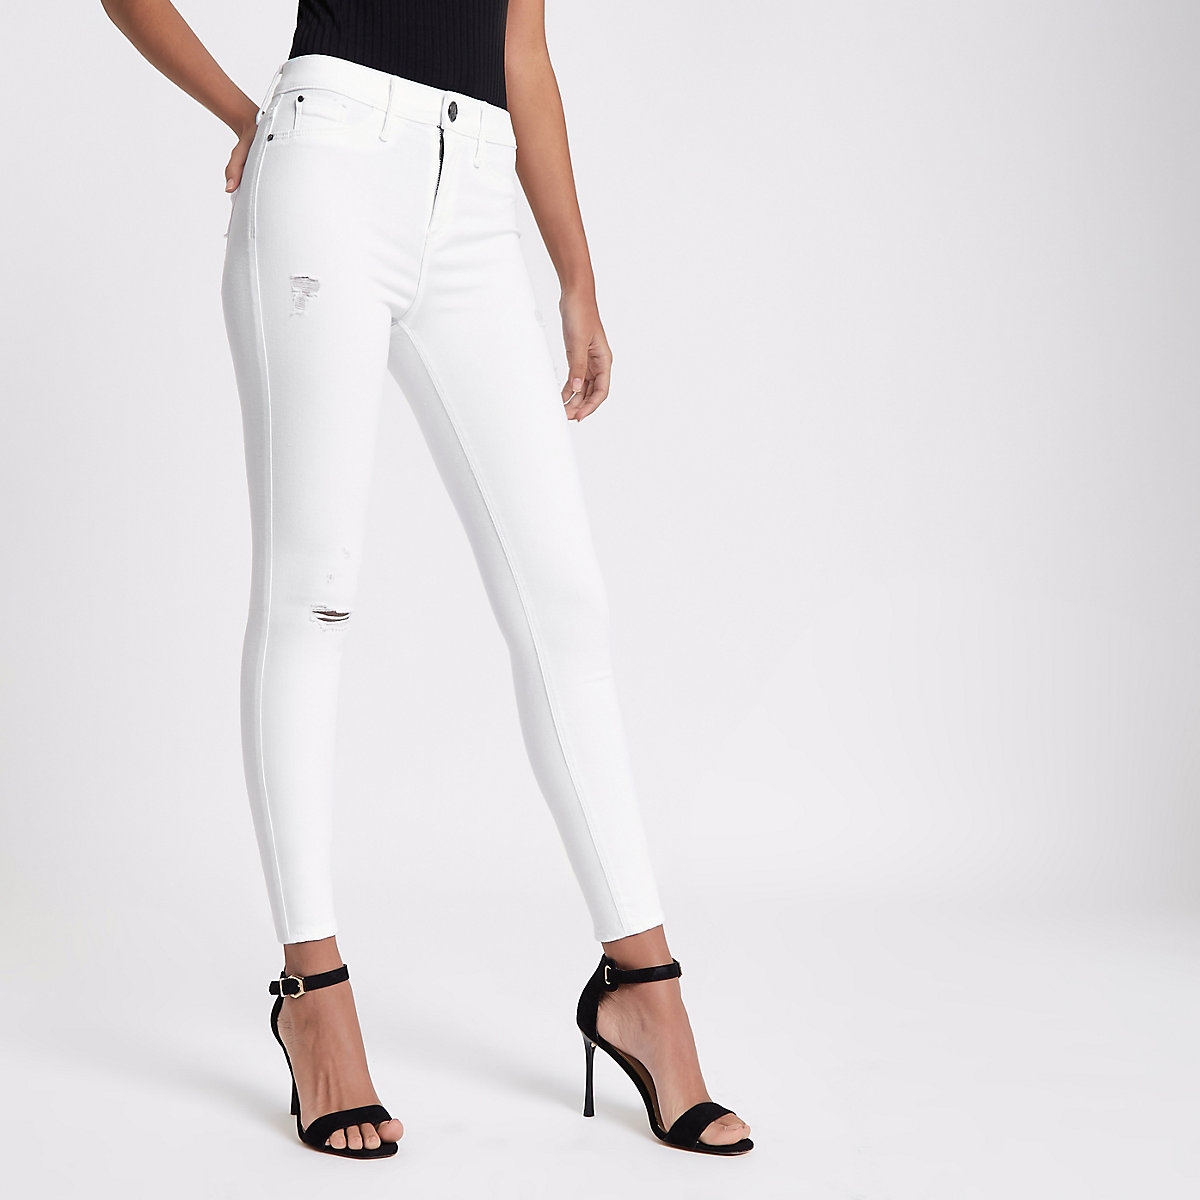 White FTBC charity Molly mid rise jeggings